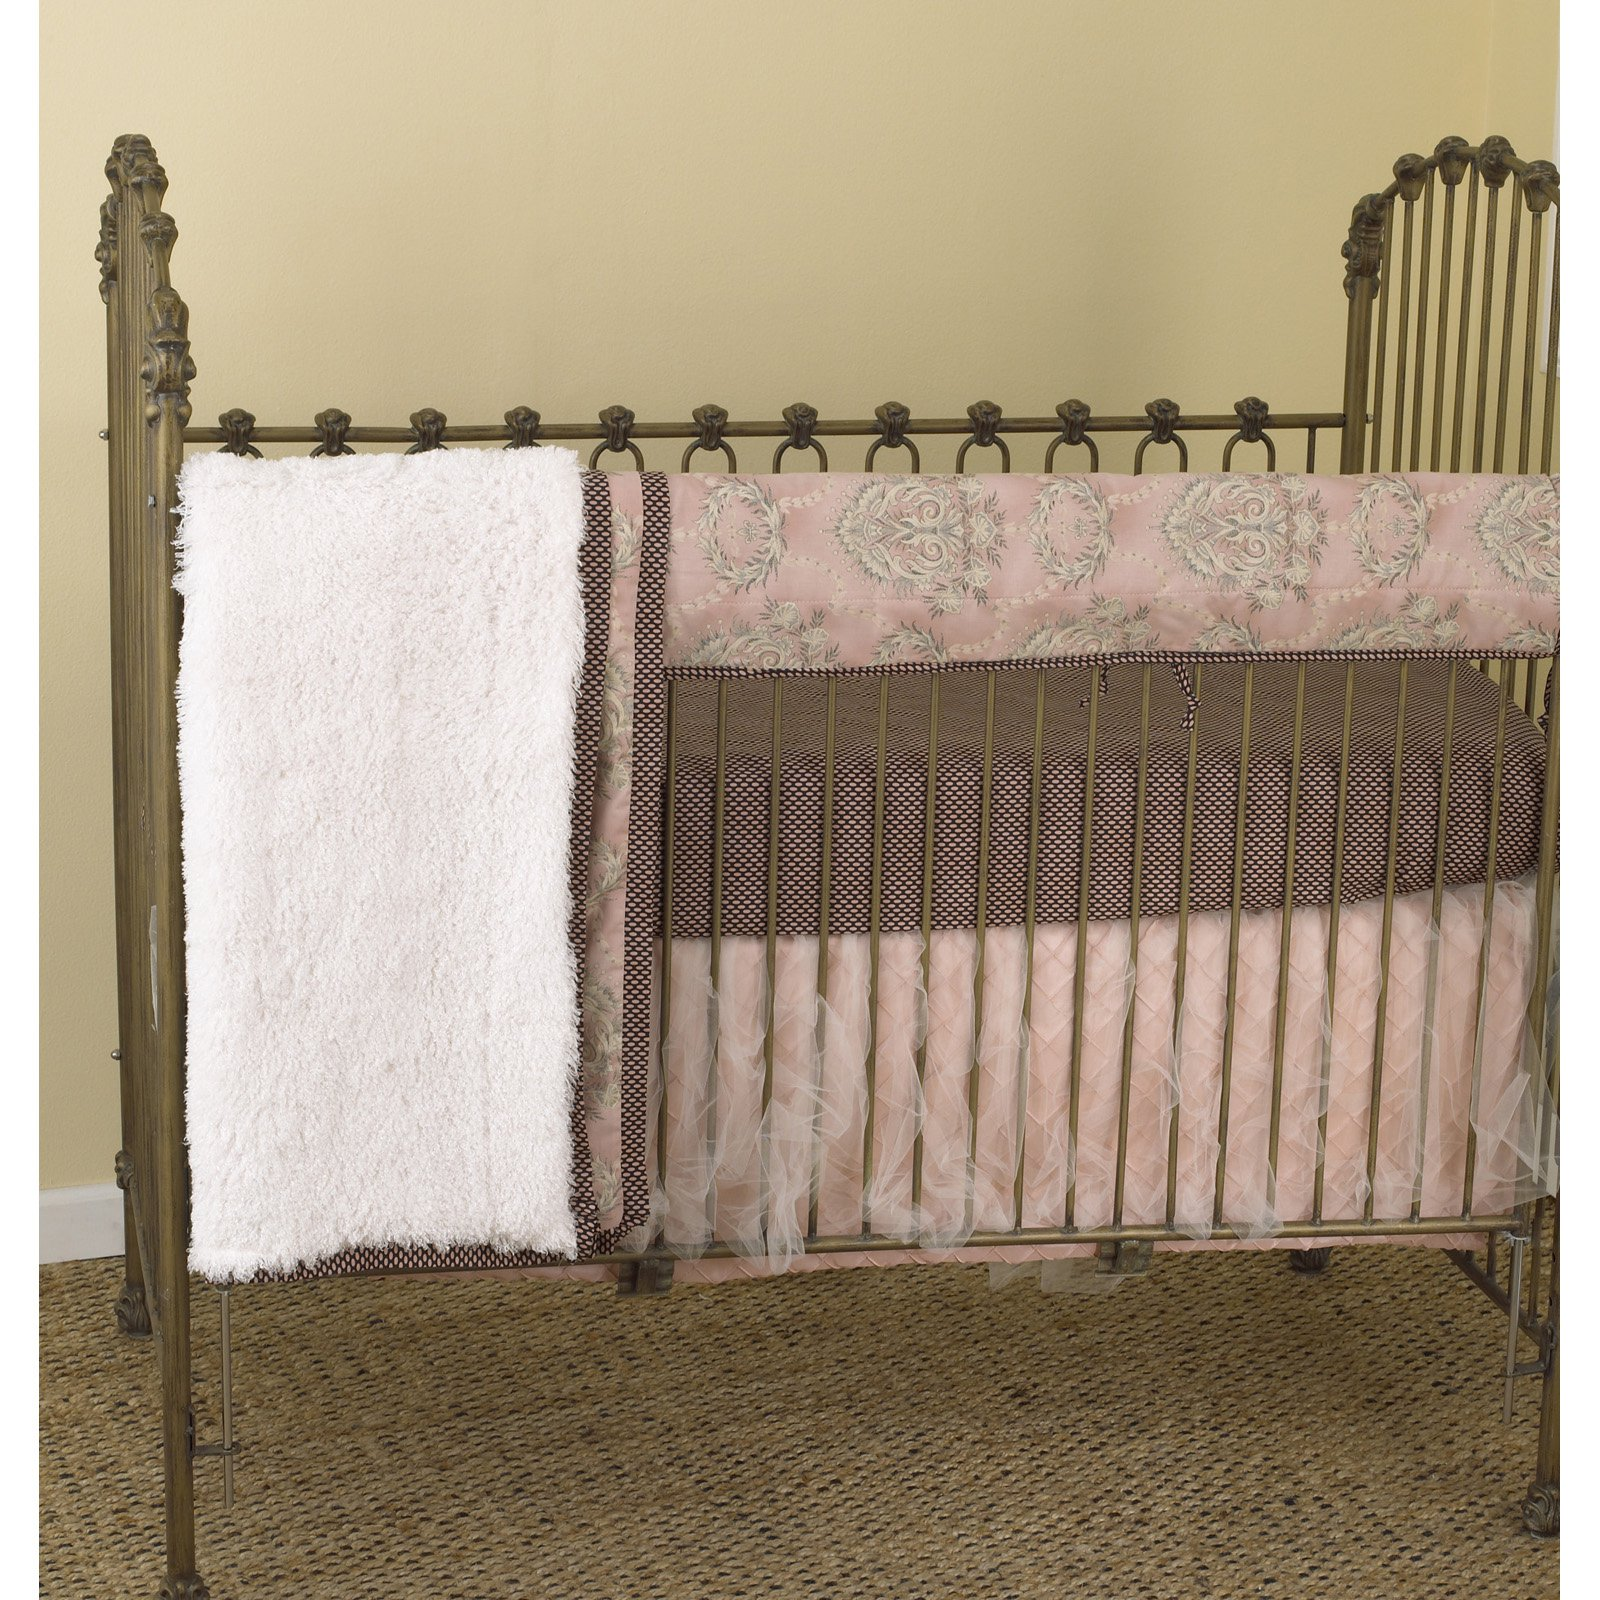 Cotton Tale Designs Nightingale Front Crib Rail Cover Up Set